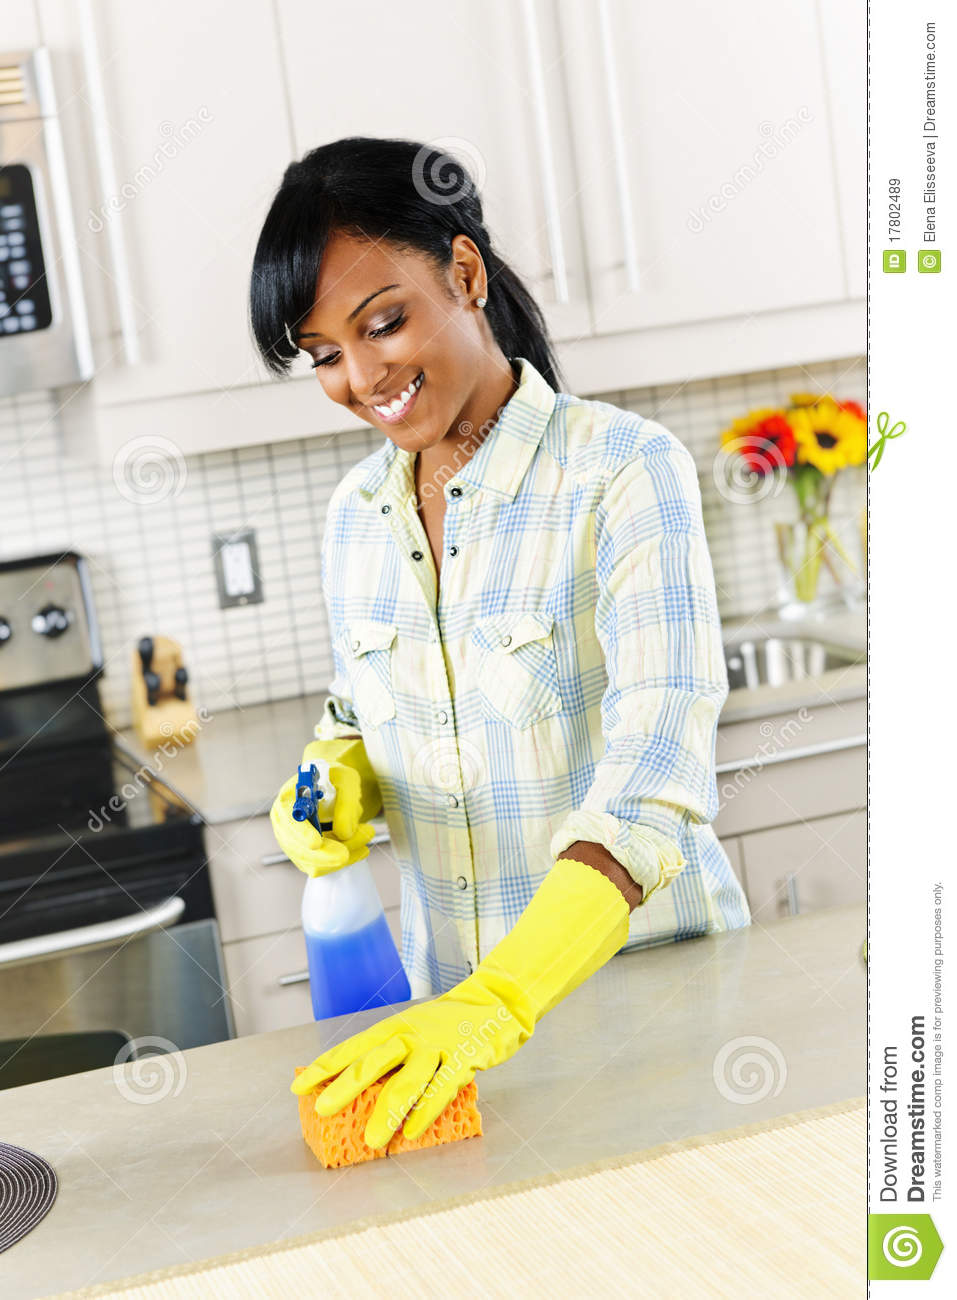 Hardworking young lady cleans the kitchen before pounding 5